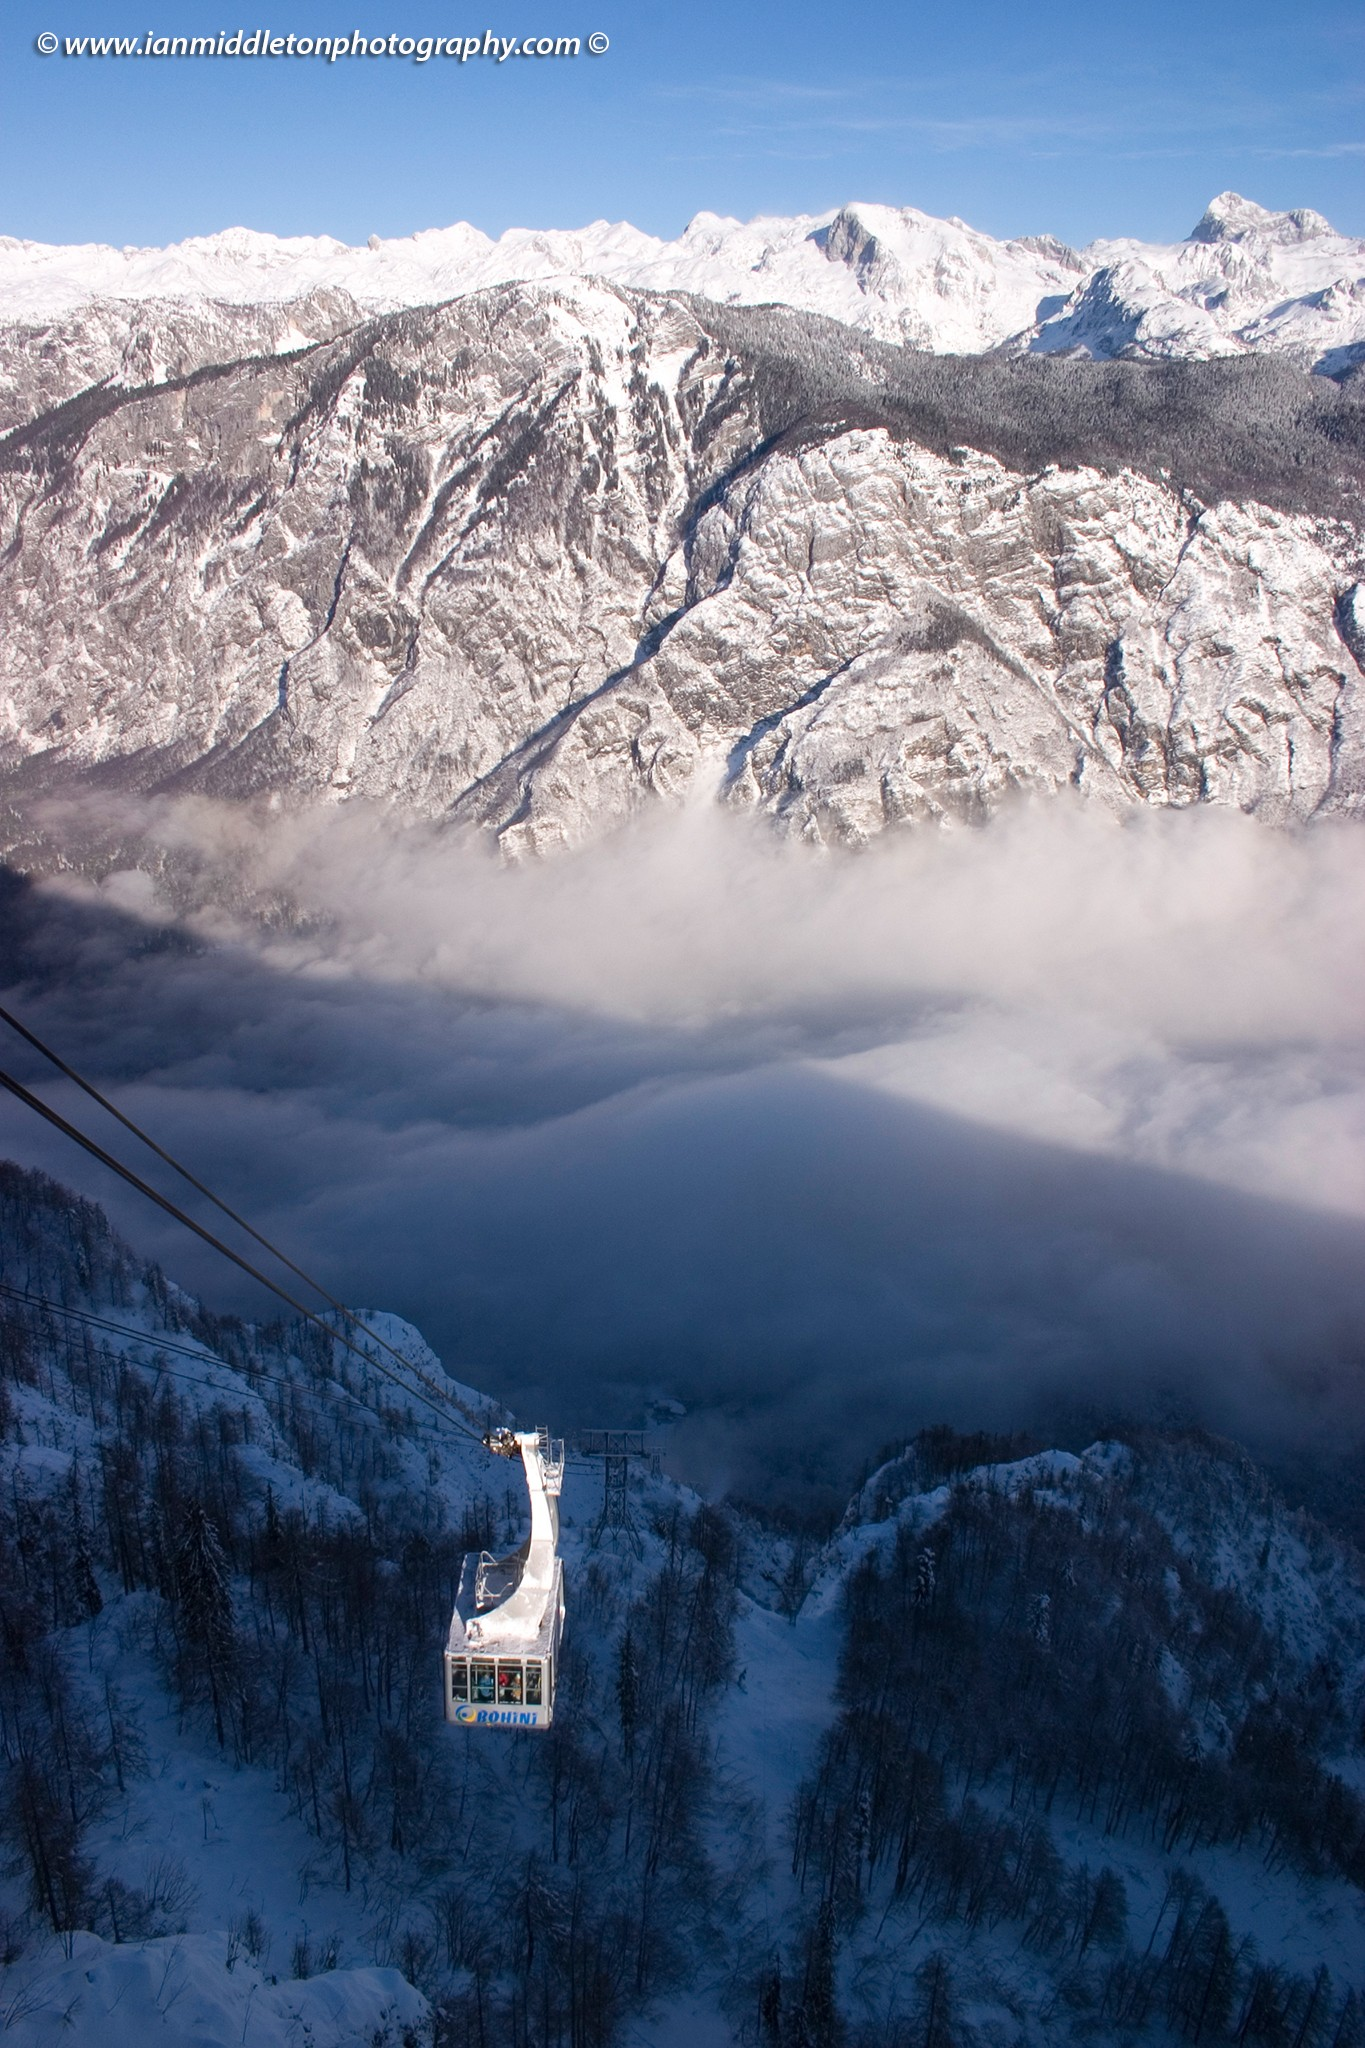 Winter view from Vogel Mountain as the cable car brings skiers up to the mountain, Slovenia. In the background you can see the snow covered Julian Alps and their highest mountain, Mount Triglav, covered in snow. The morning mist fills the valley.